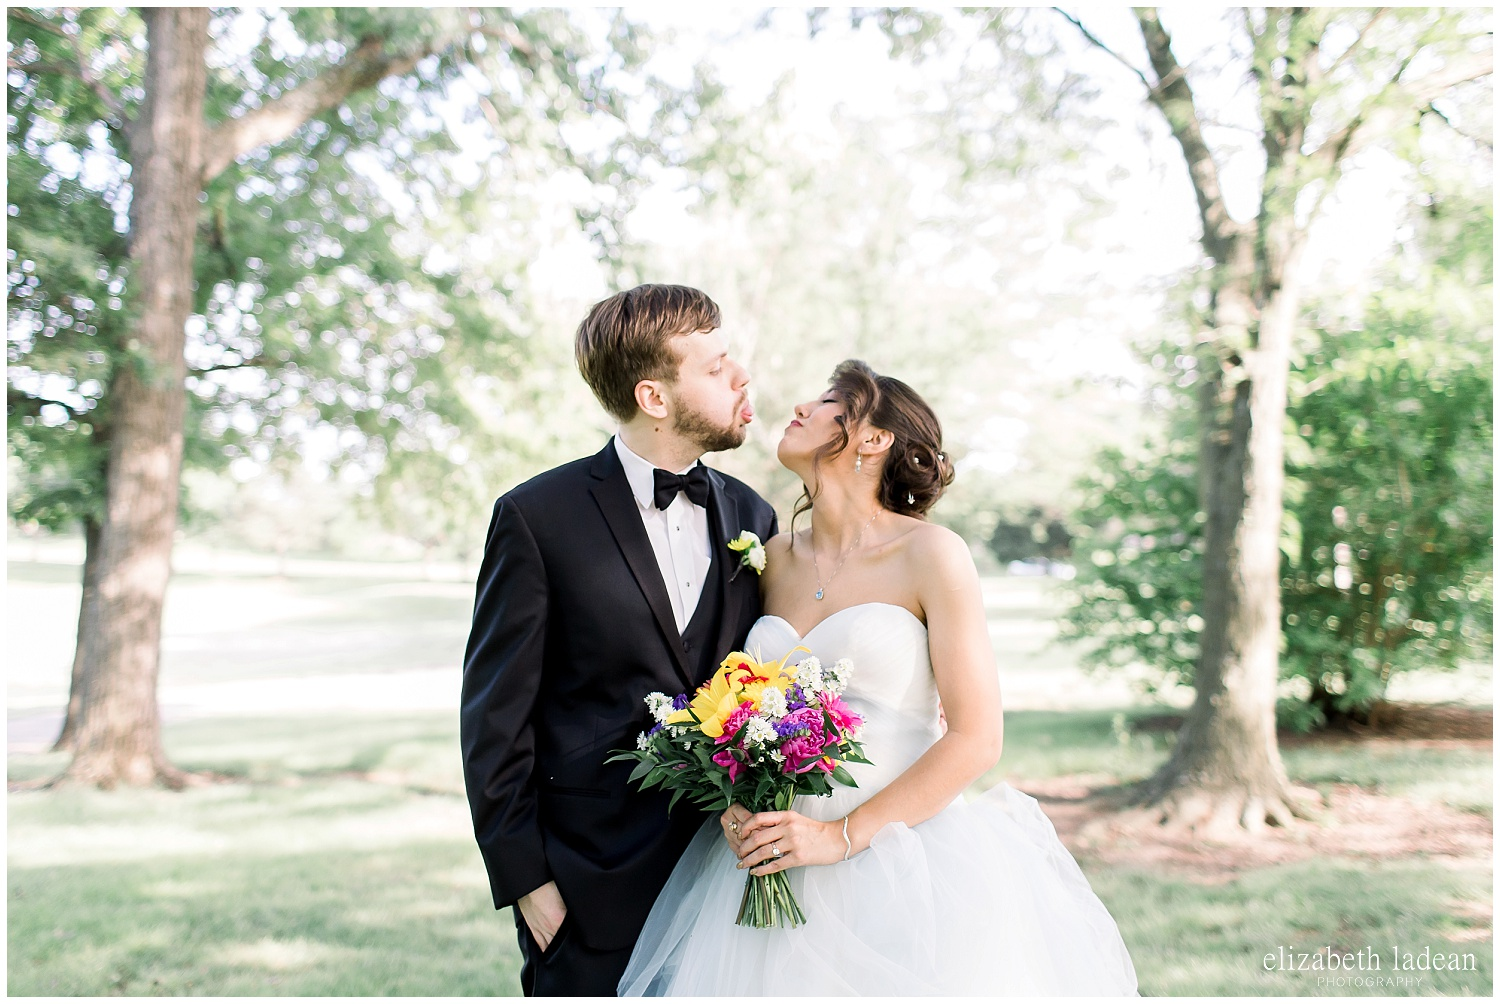 -behind-the-scenes-of-a-wedding-photographer-2018-elizabeth-ladean-photography-photo_3451.jpg